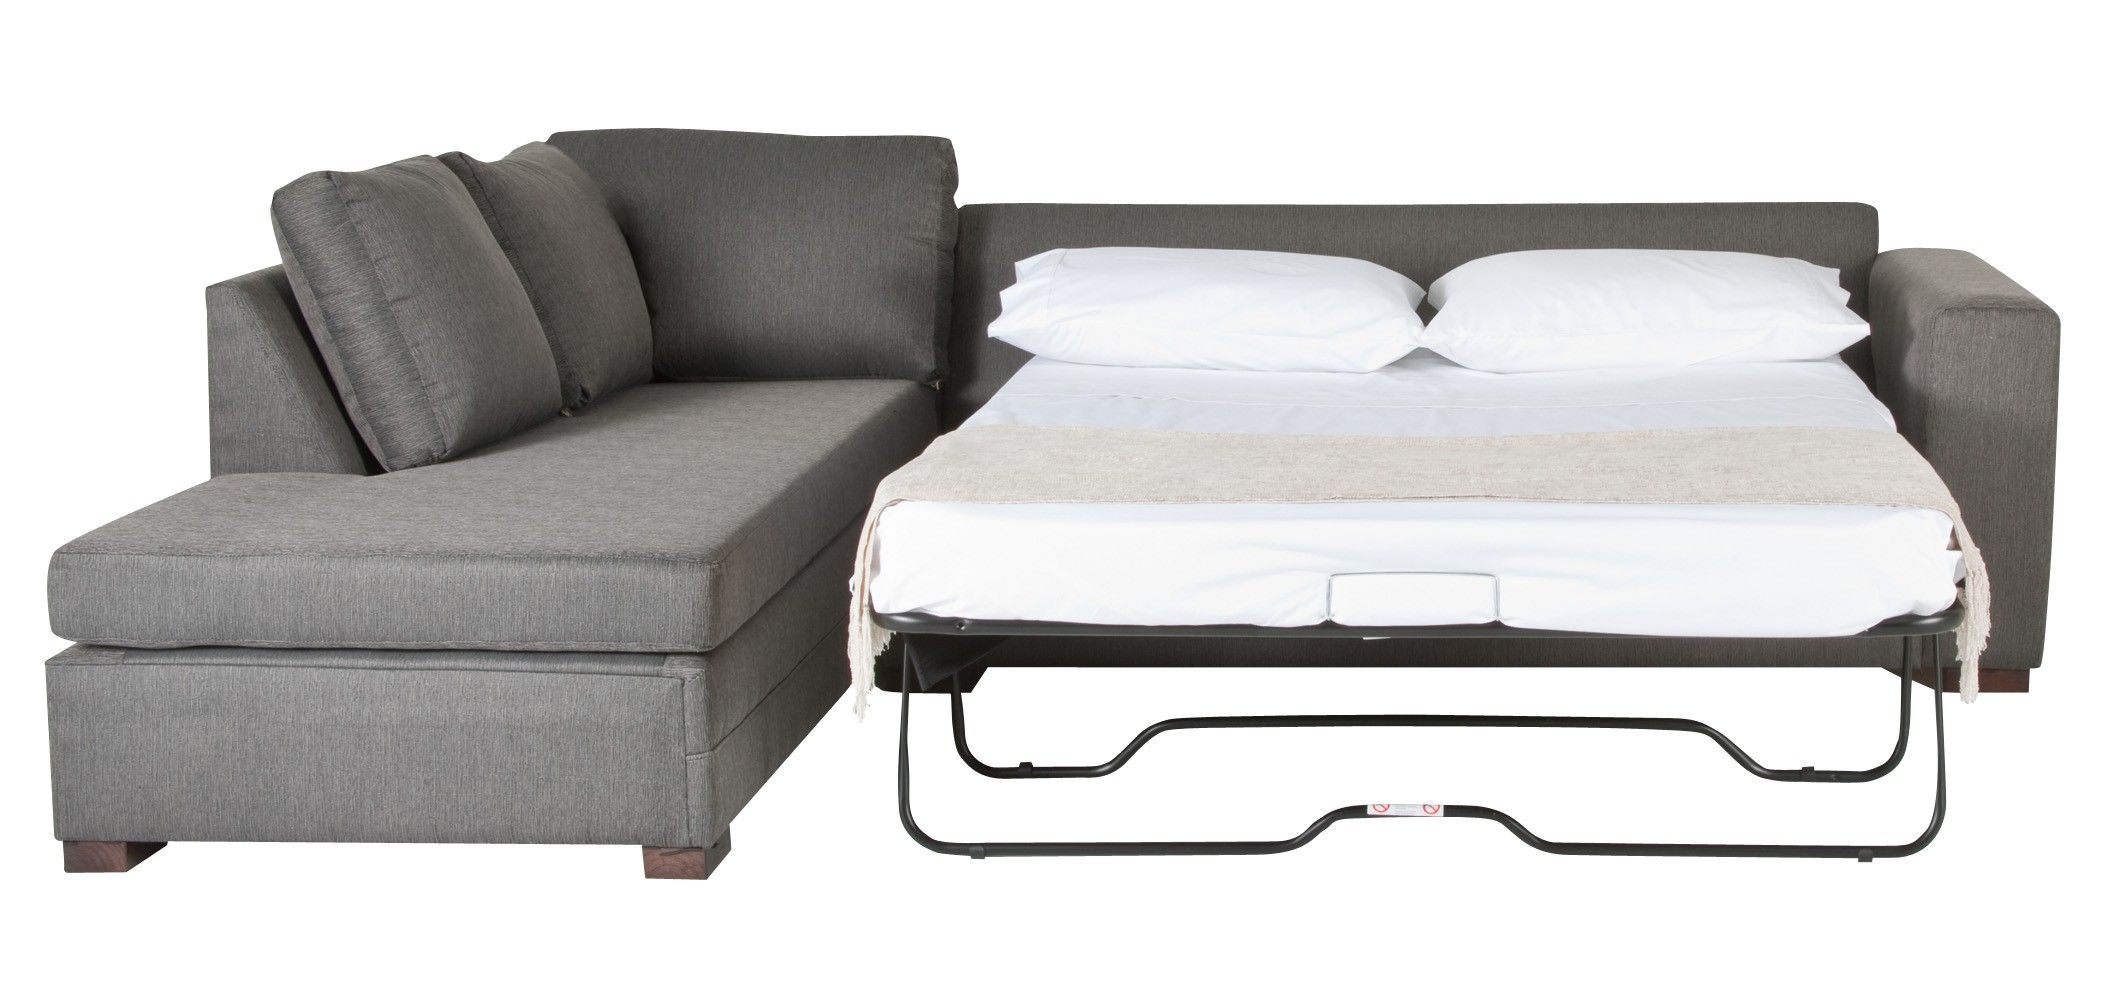 sofa chaise lounge recliner sleeper and sectional sas with recliners sofas salove couches